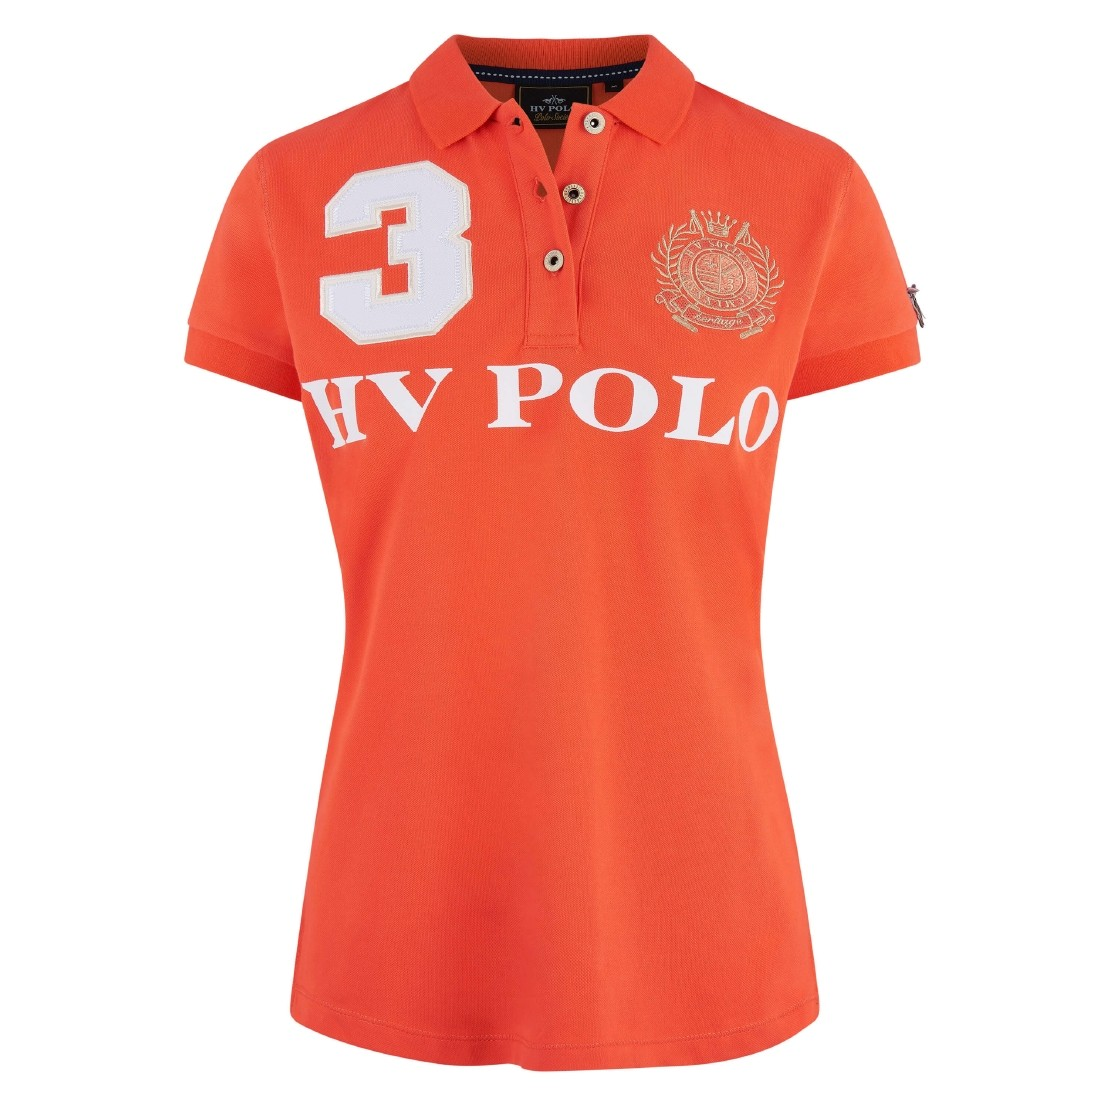 Poloshirt Favouritas EQ kurze Ärmel L Orange